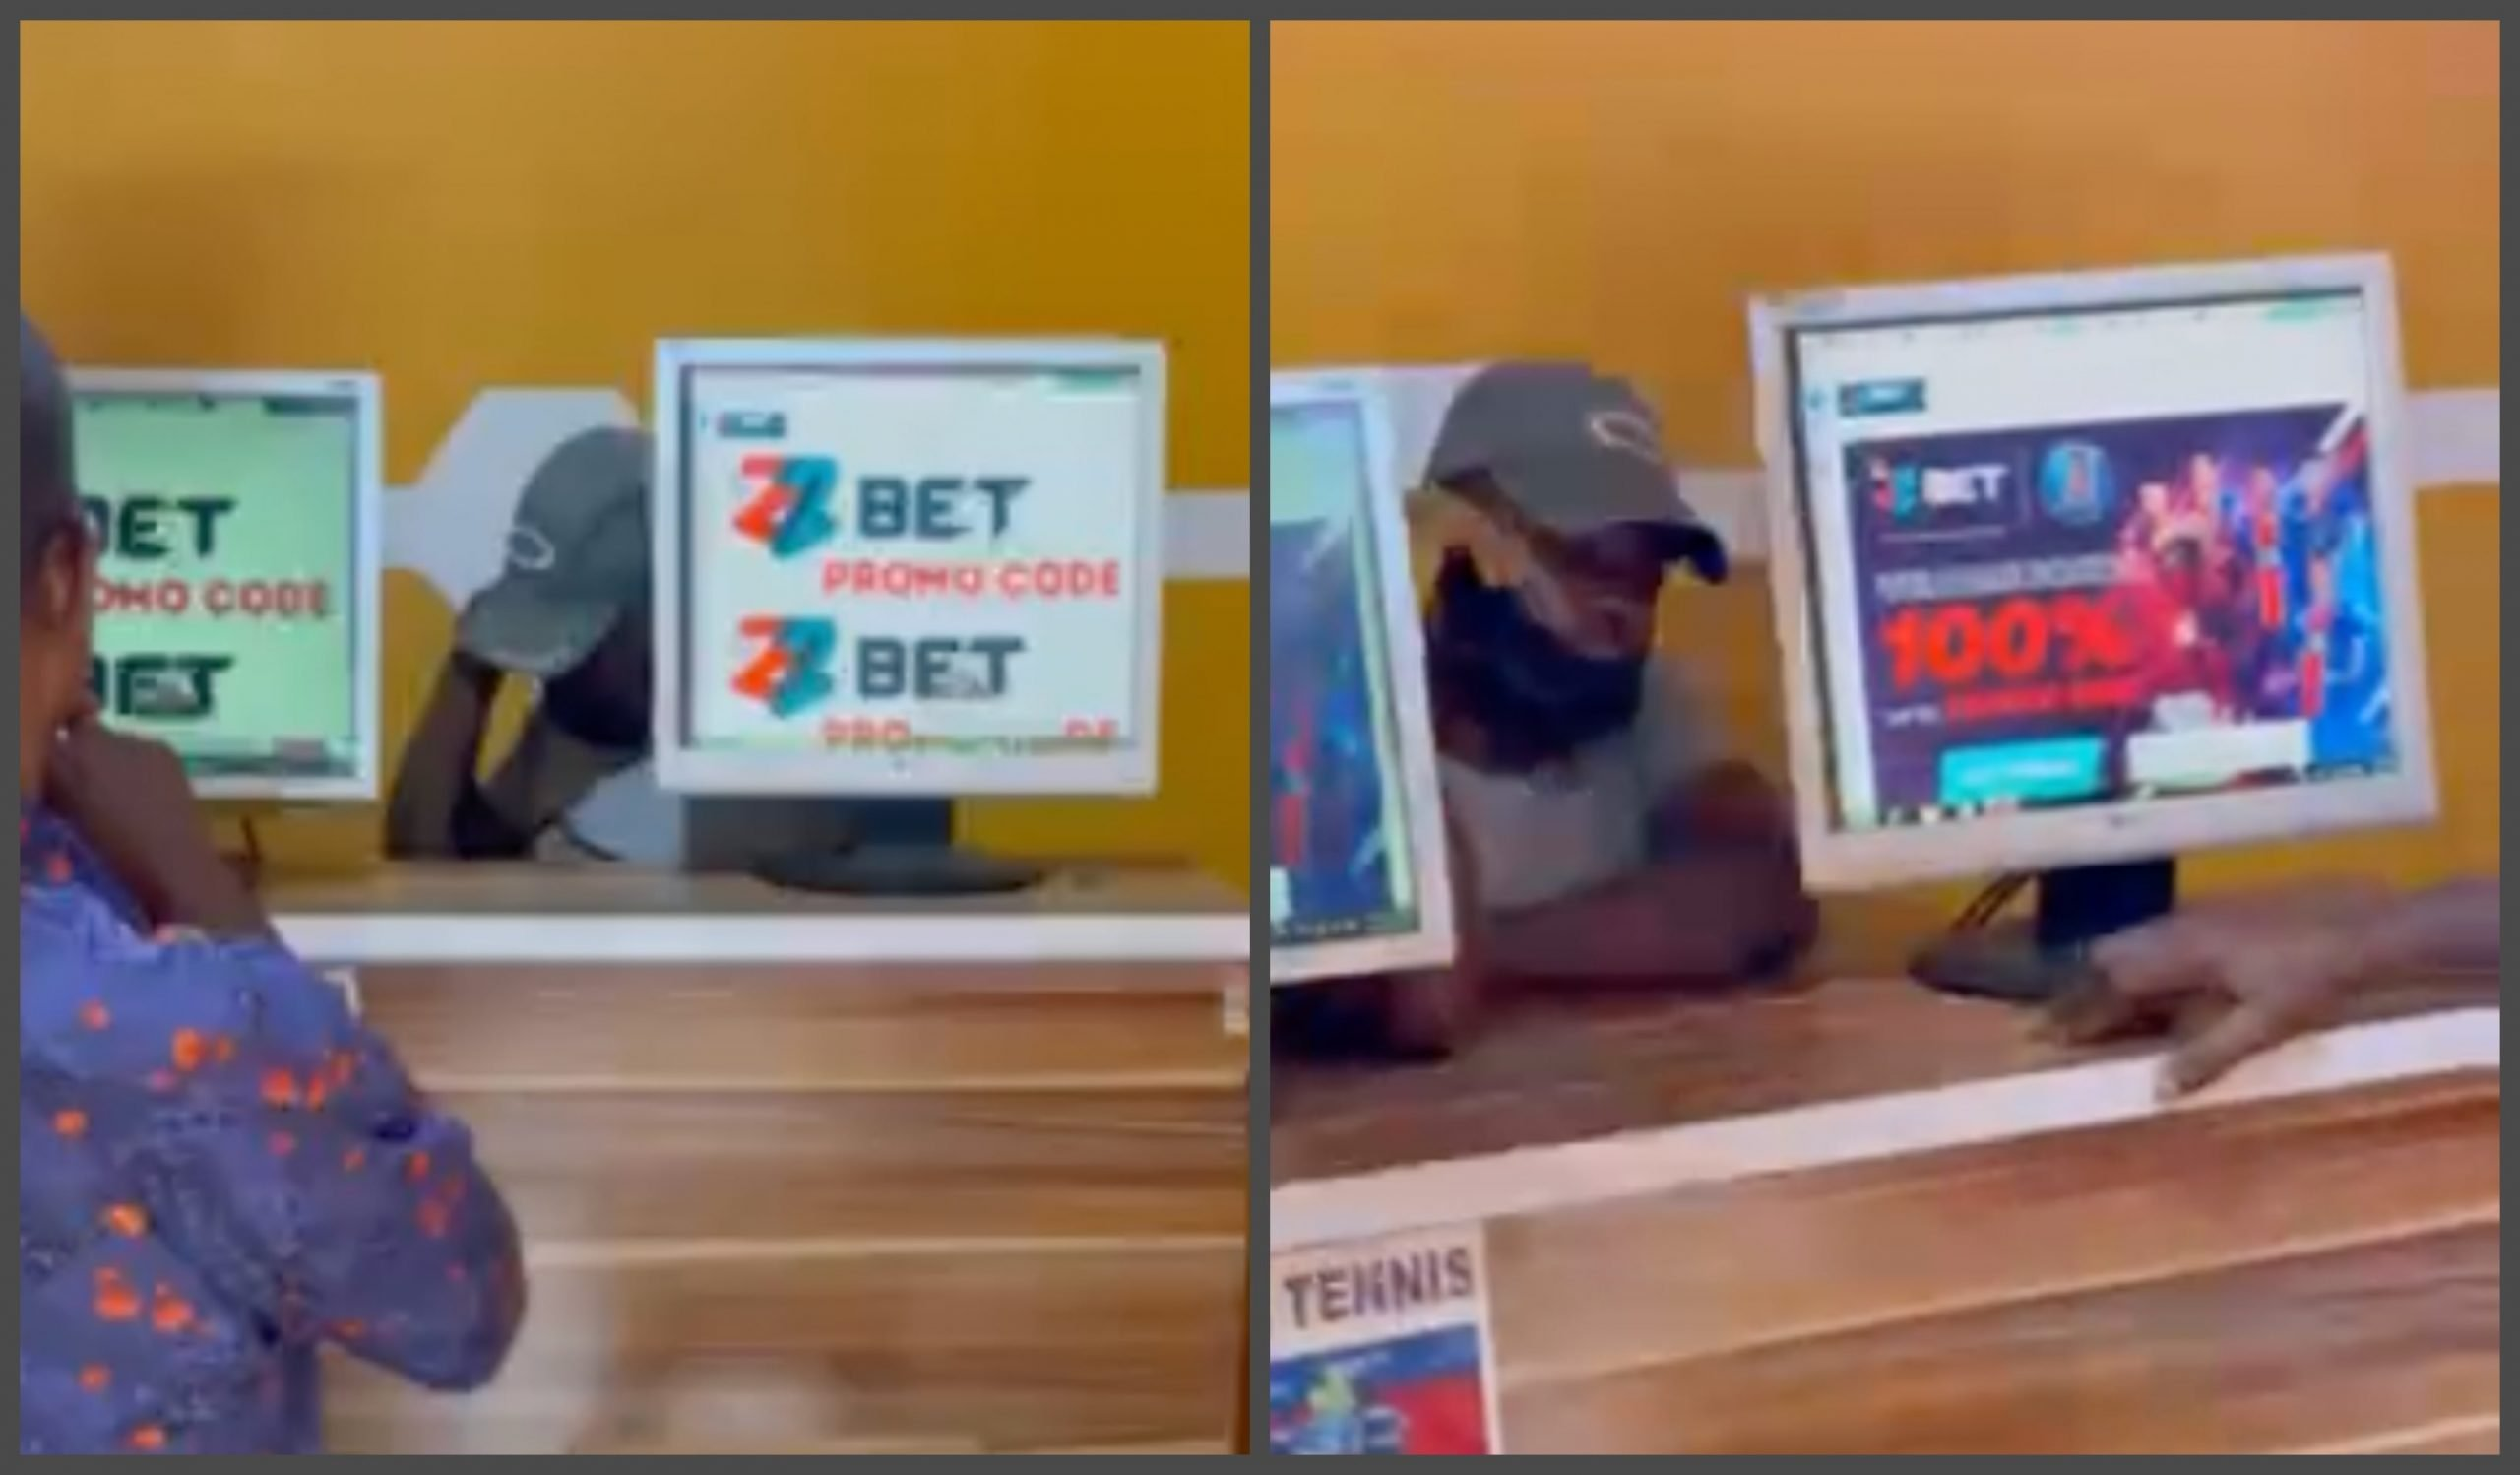 Betting shop display 22Bet brand imagery.